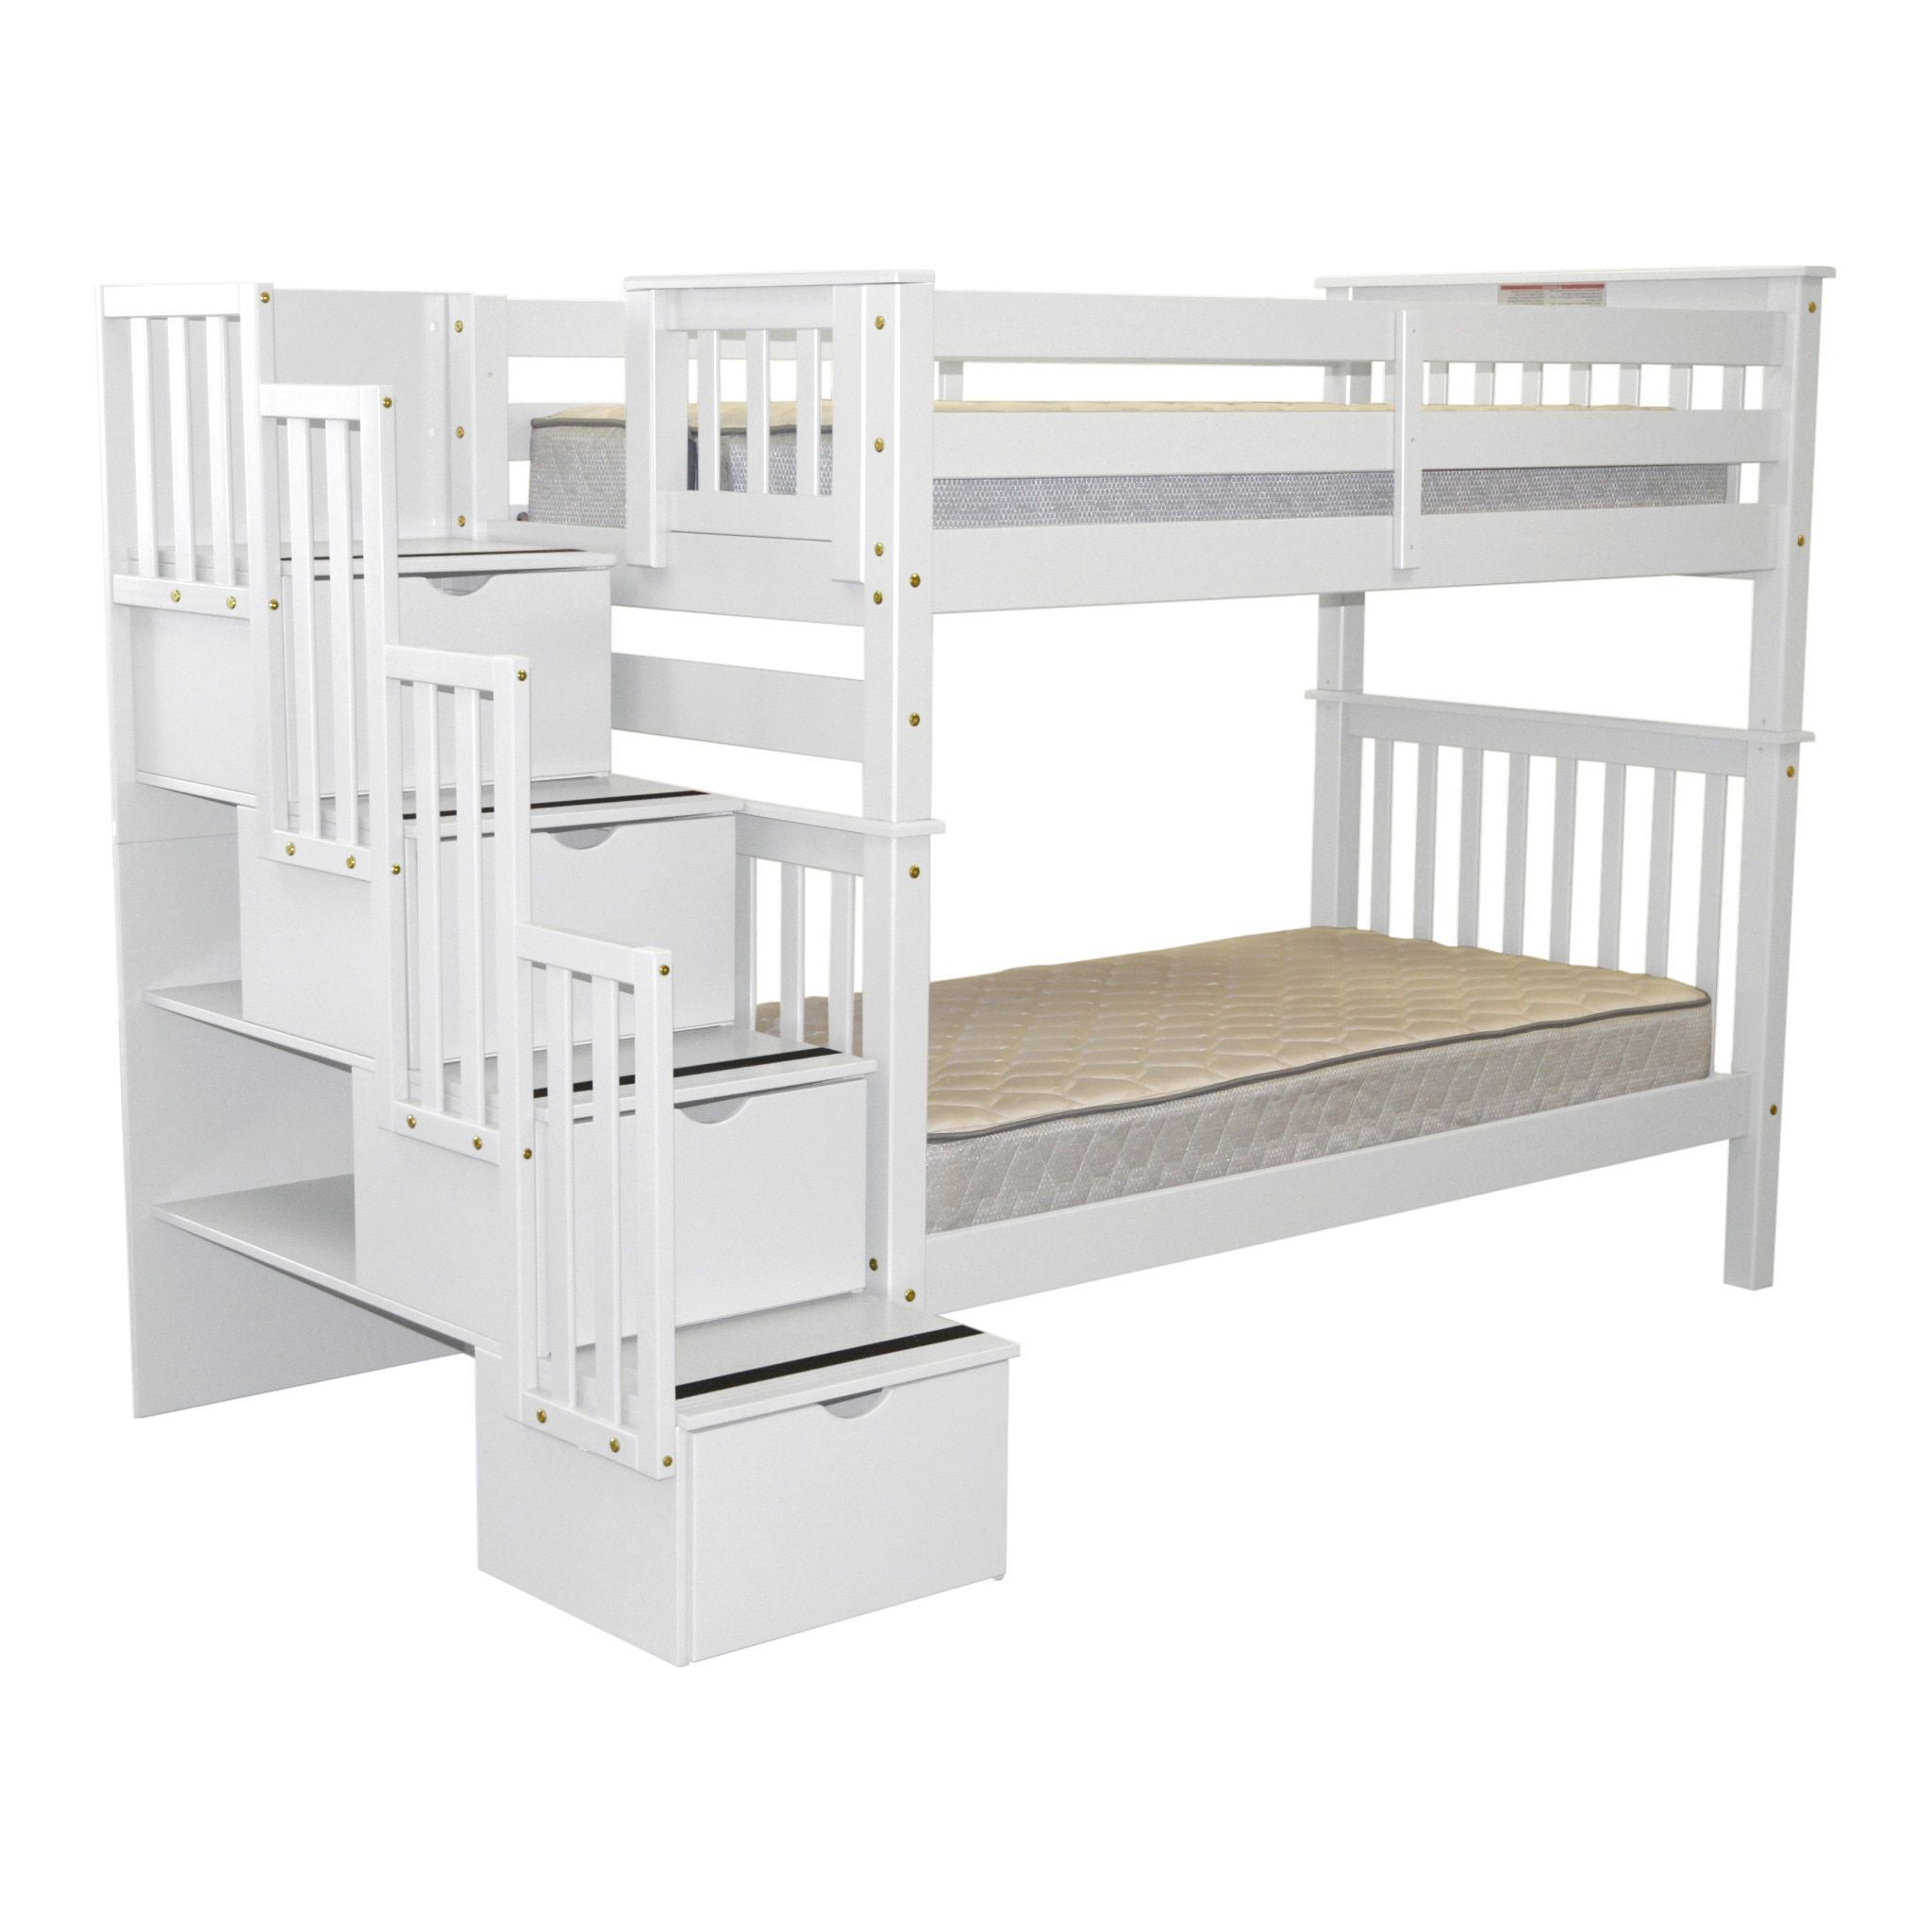 Bedz King Tall Stairway Bunk Bed Twin Over Twin With 4 Drawers In The Steps,